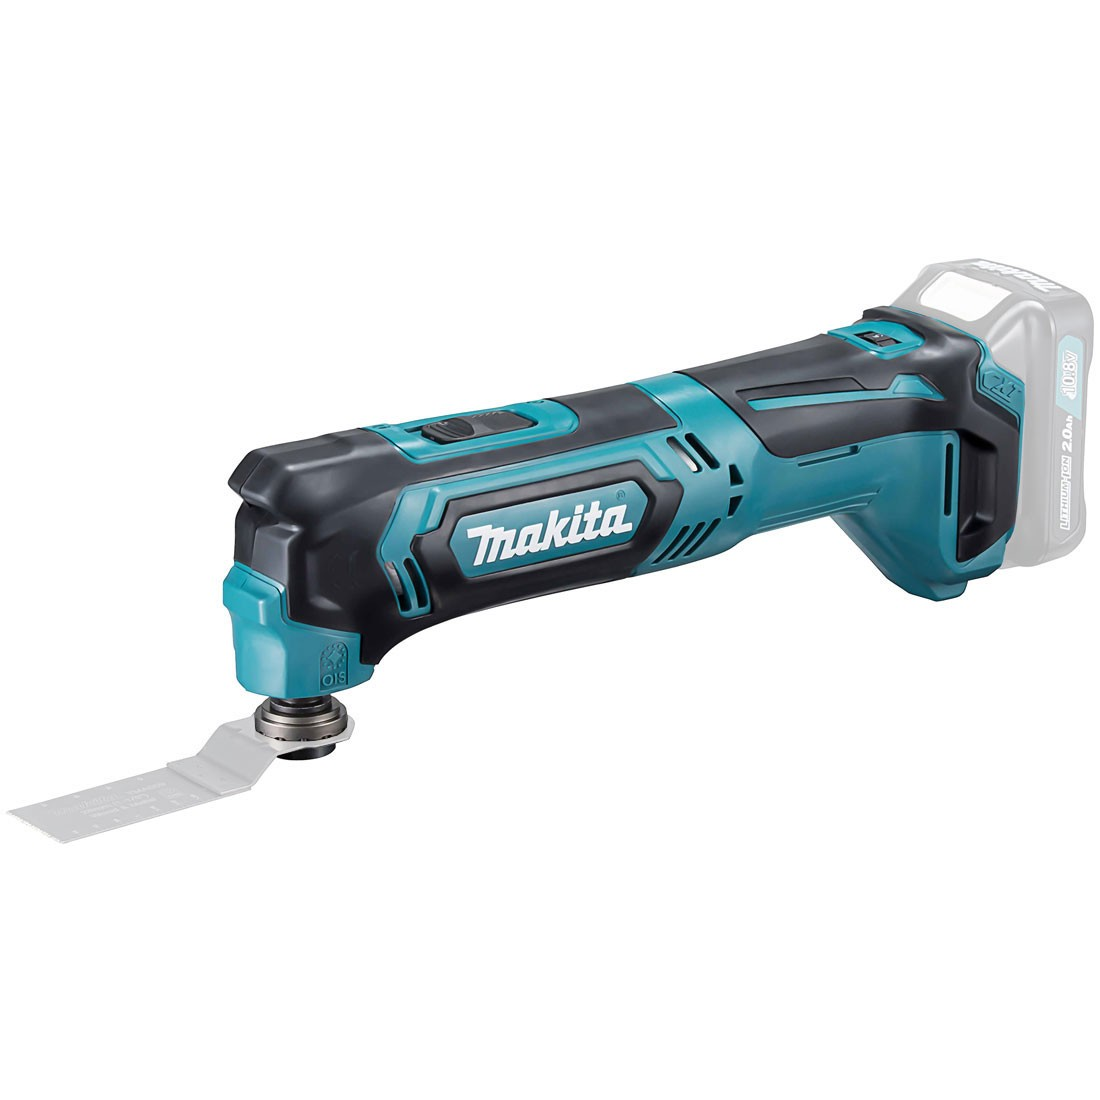 Makita TM30DZ 10.8v CXT Slide Multi Cutter Tool Body Only